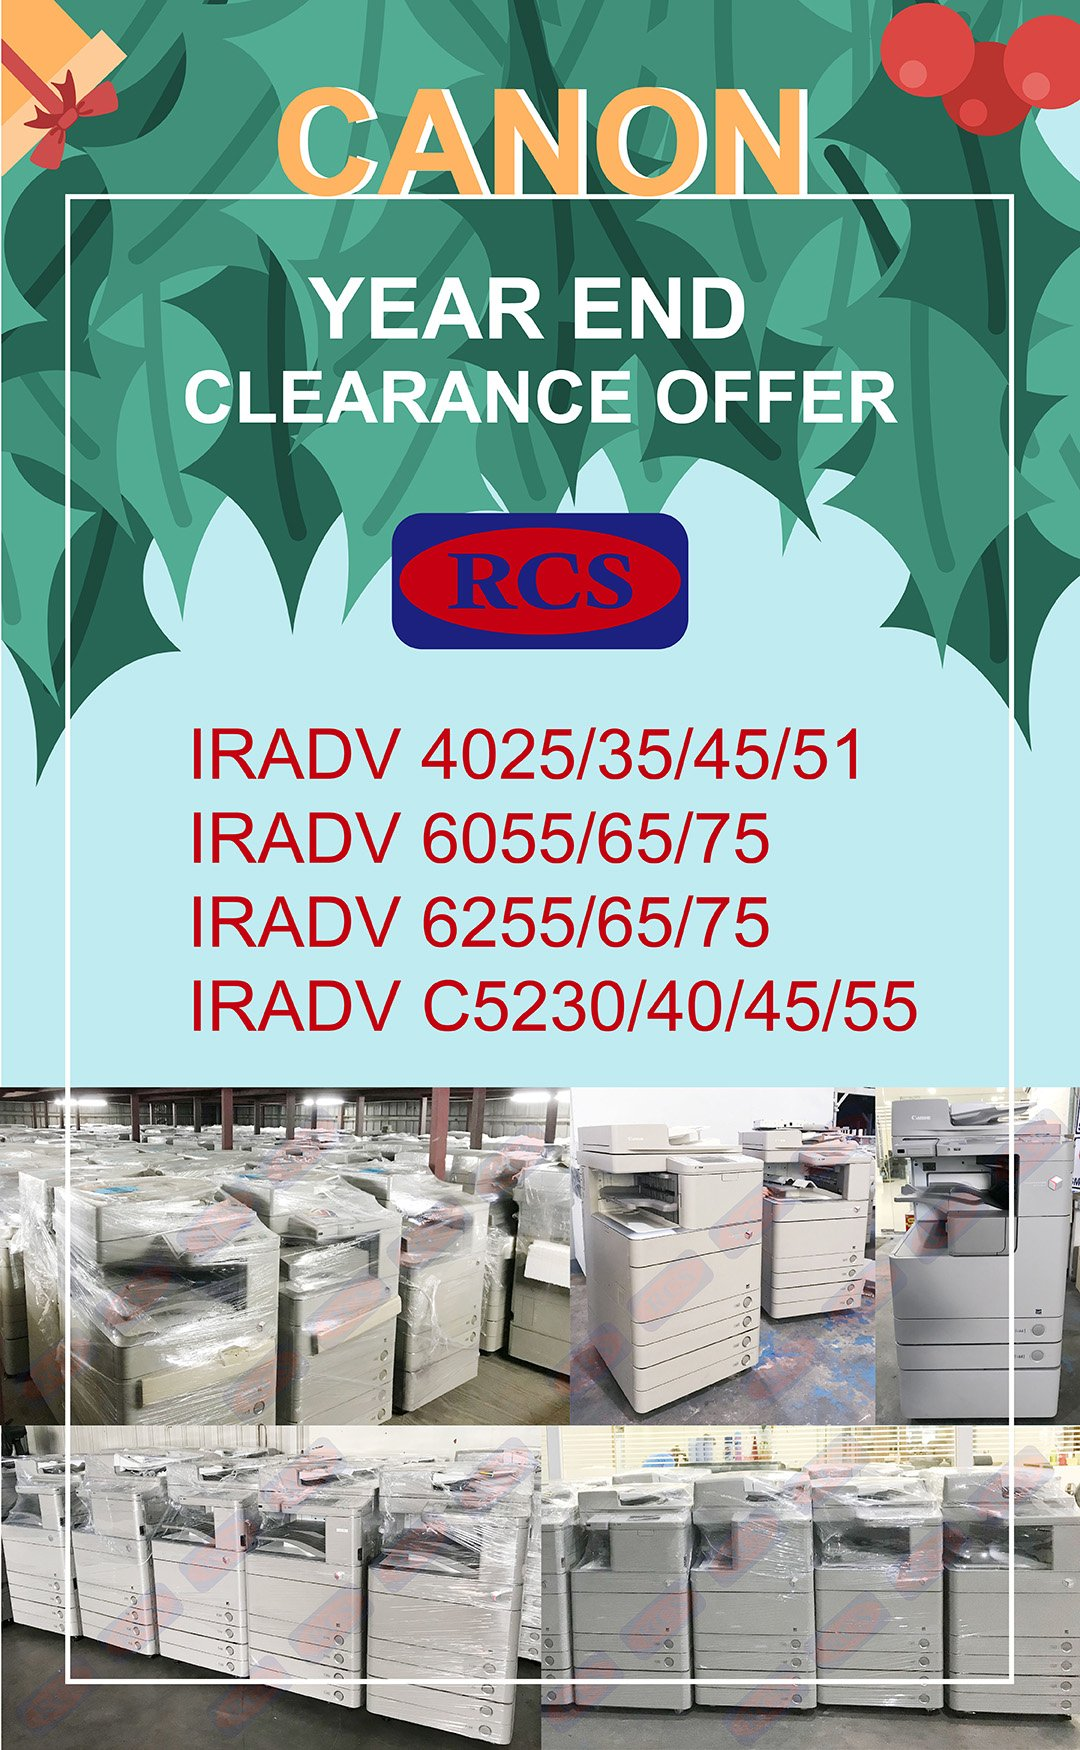 CANON YEAR END CLEARANCE OFFER! FUJI XEROX/RICOH/KONICA MINOLTA RECONDITIONED COPIER WHOLESALE